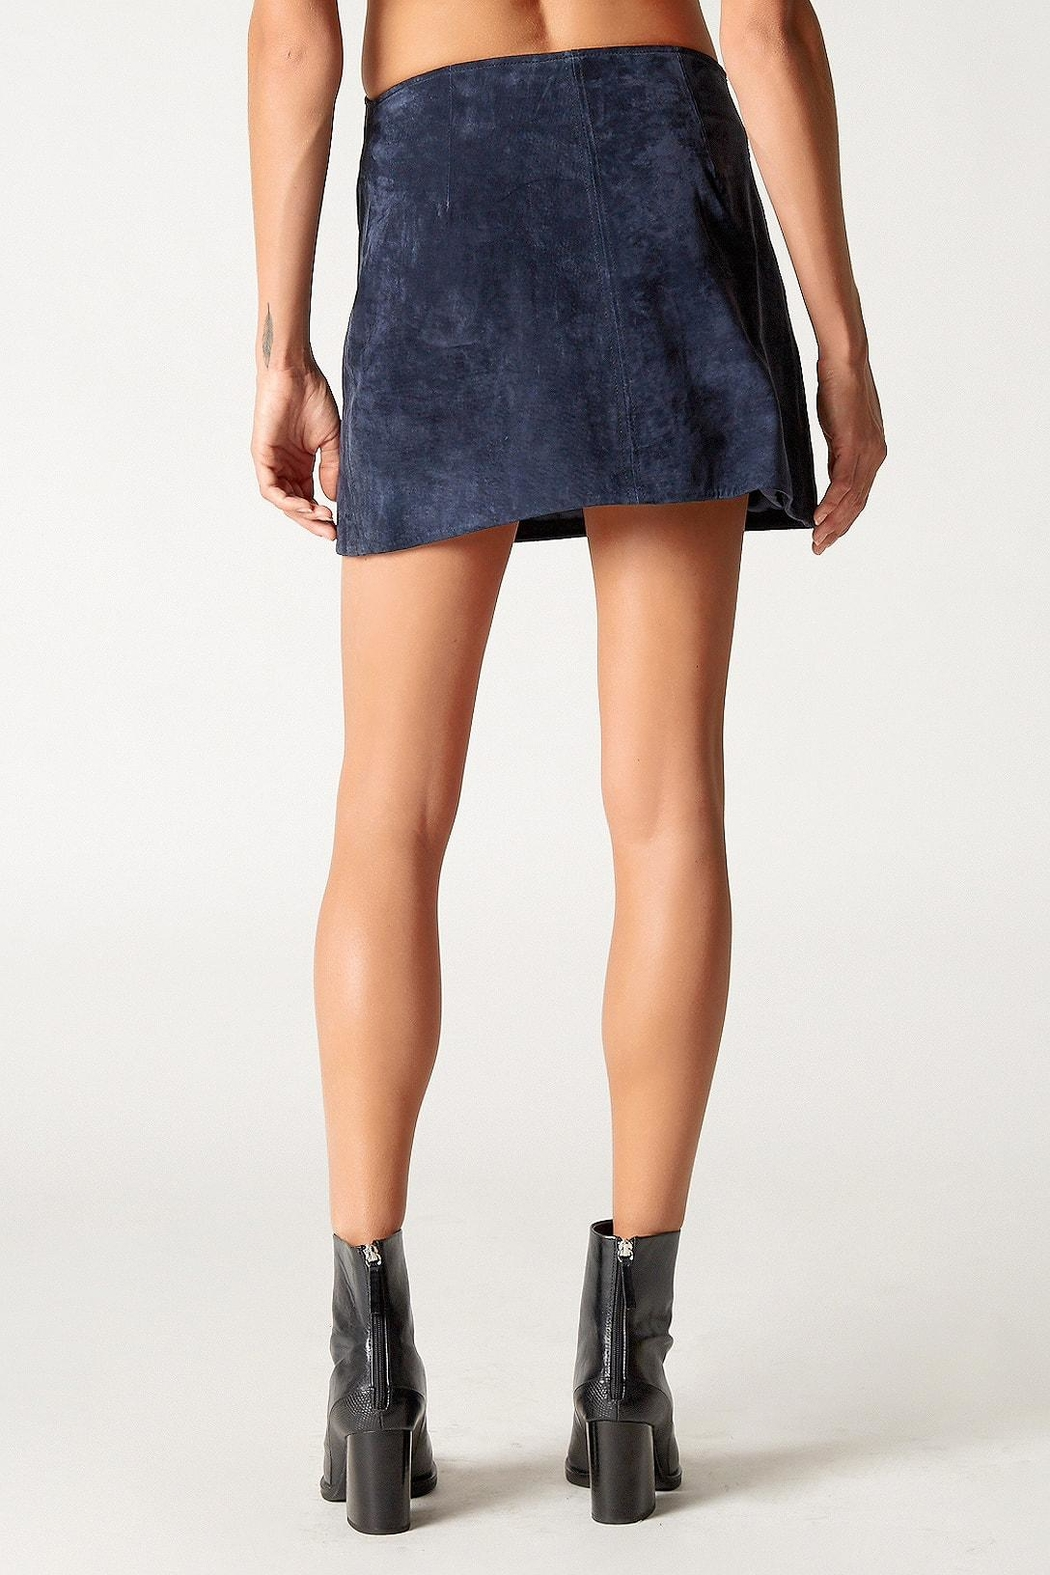 Blank NYC Blue Valentine Skirt - Side Cropped Image